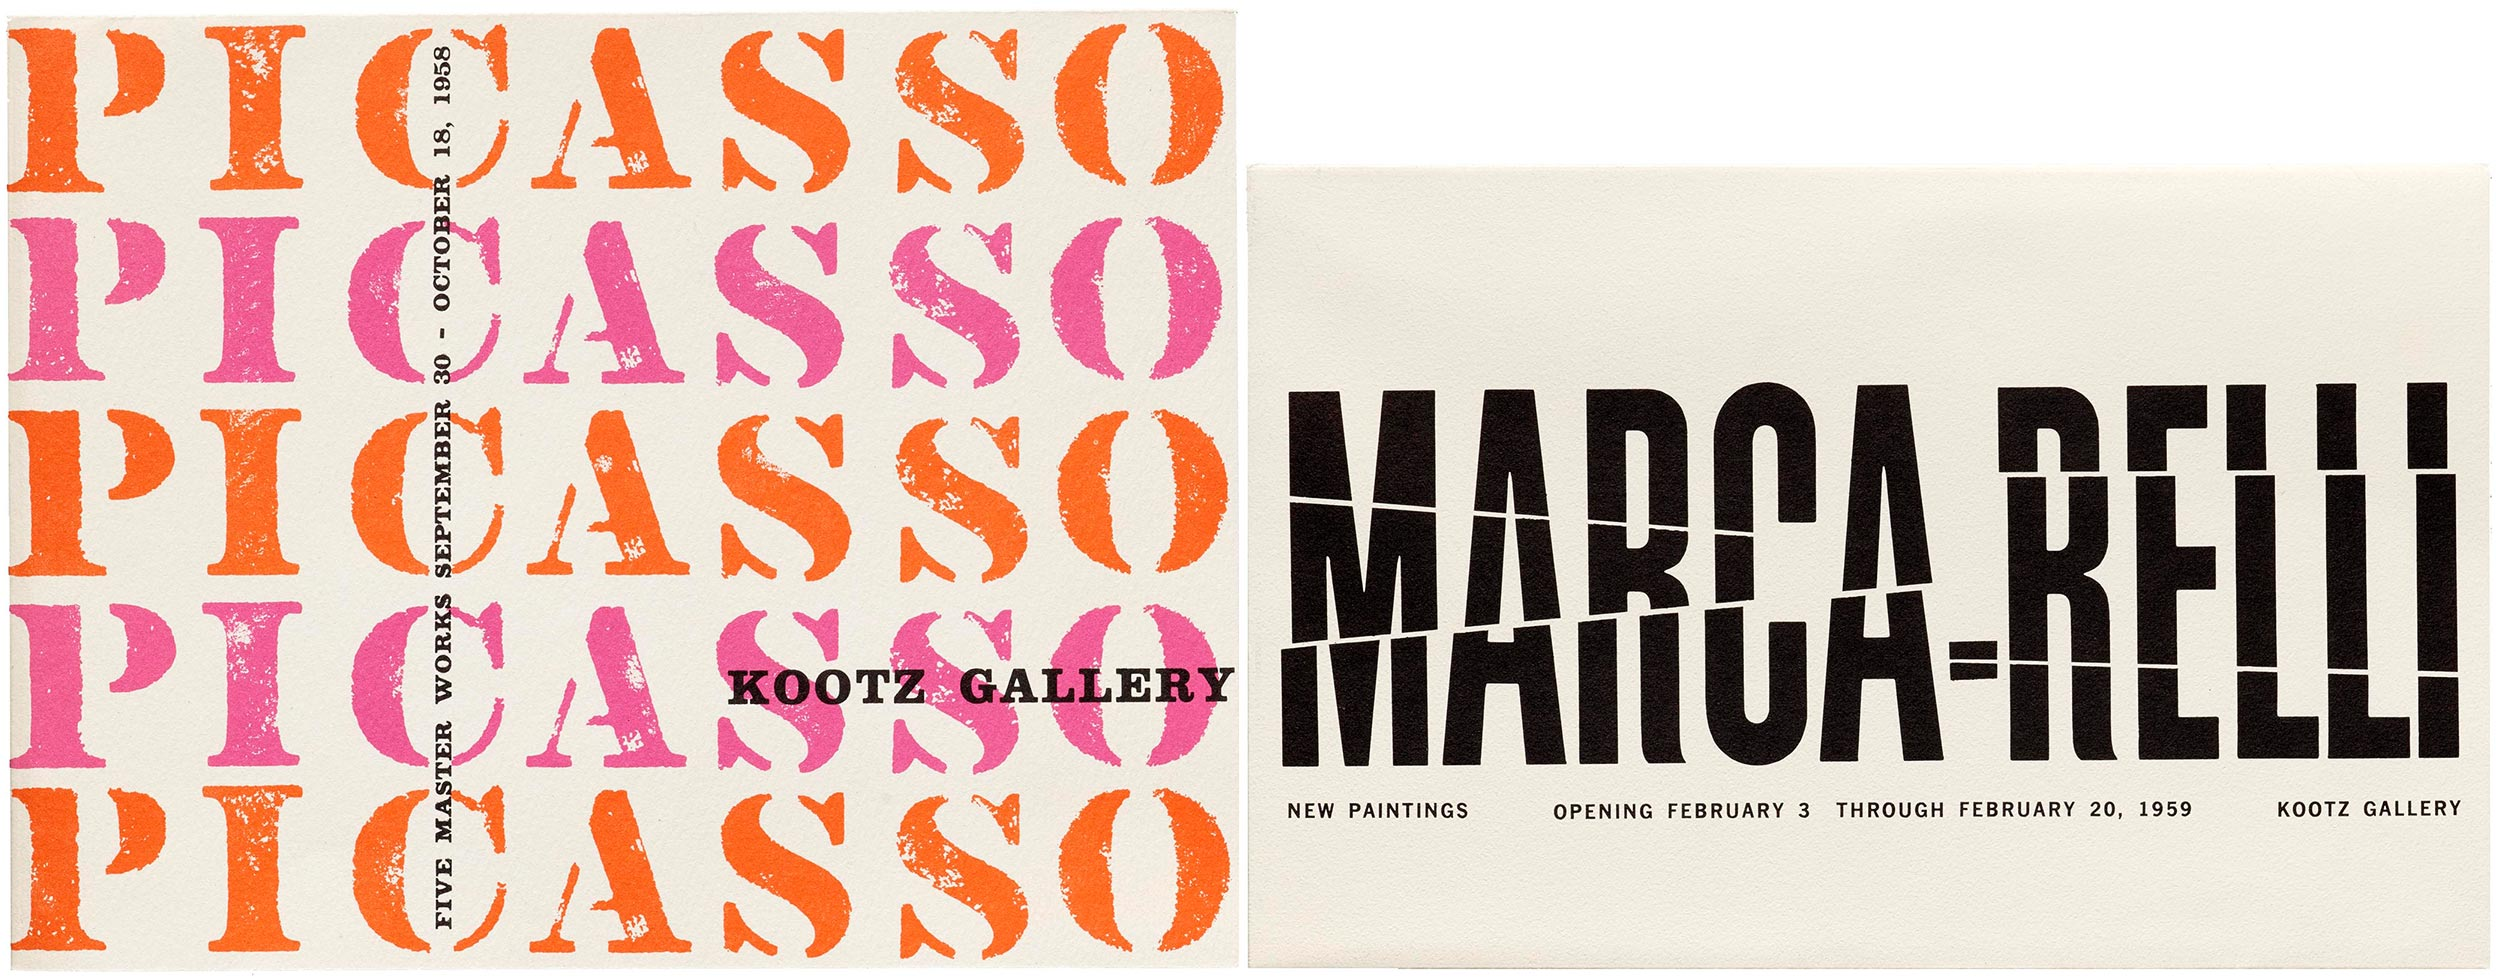 Exhibition catalogs for Picasso: The Master Works and Marca-Relli, Kootz Gallery, New York, 1958-59.